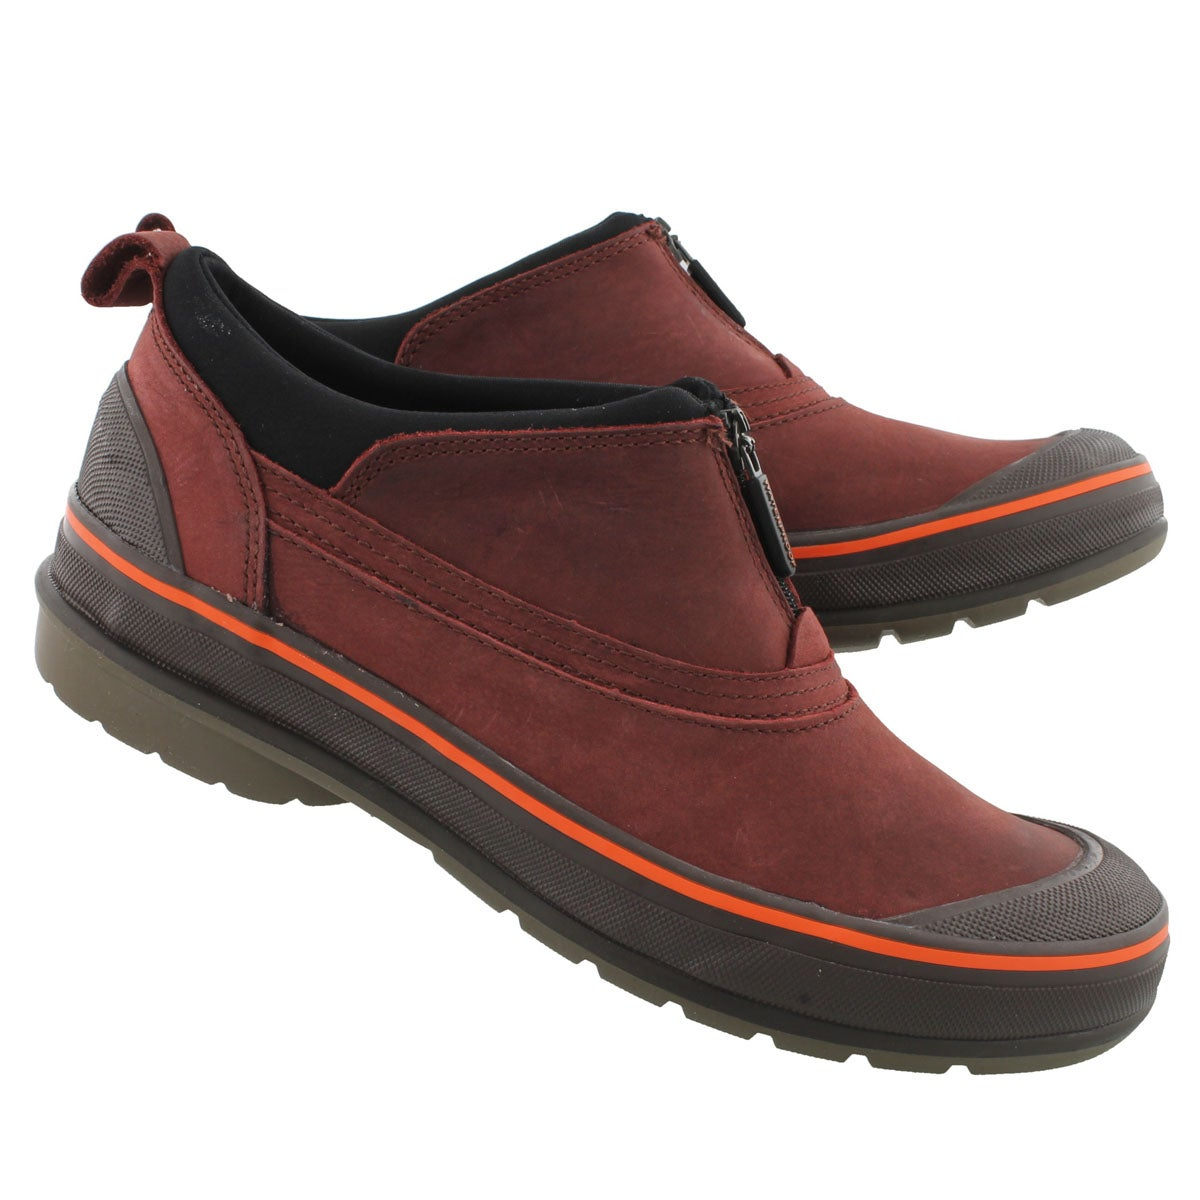 Lds Ridge red wtpf leather muckers